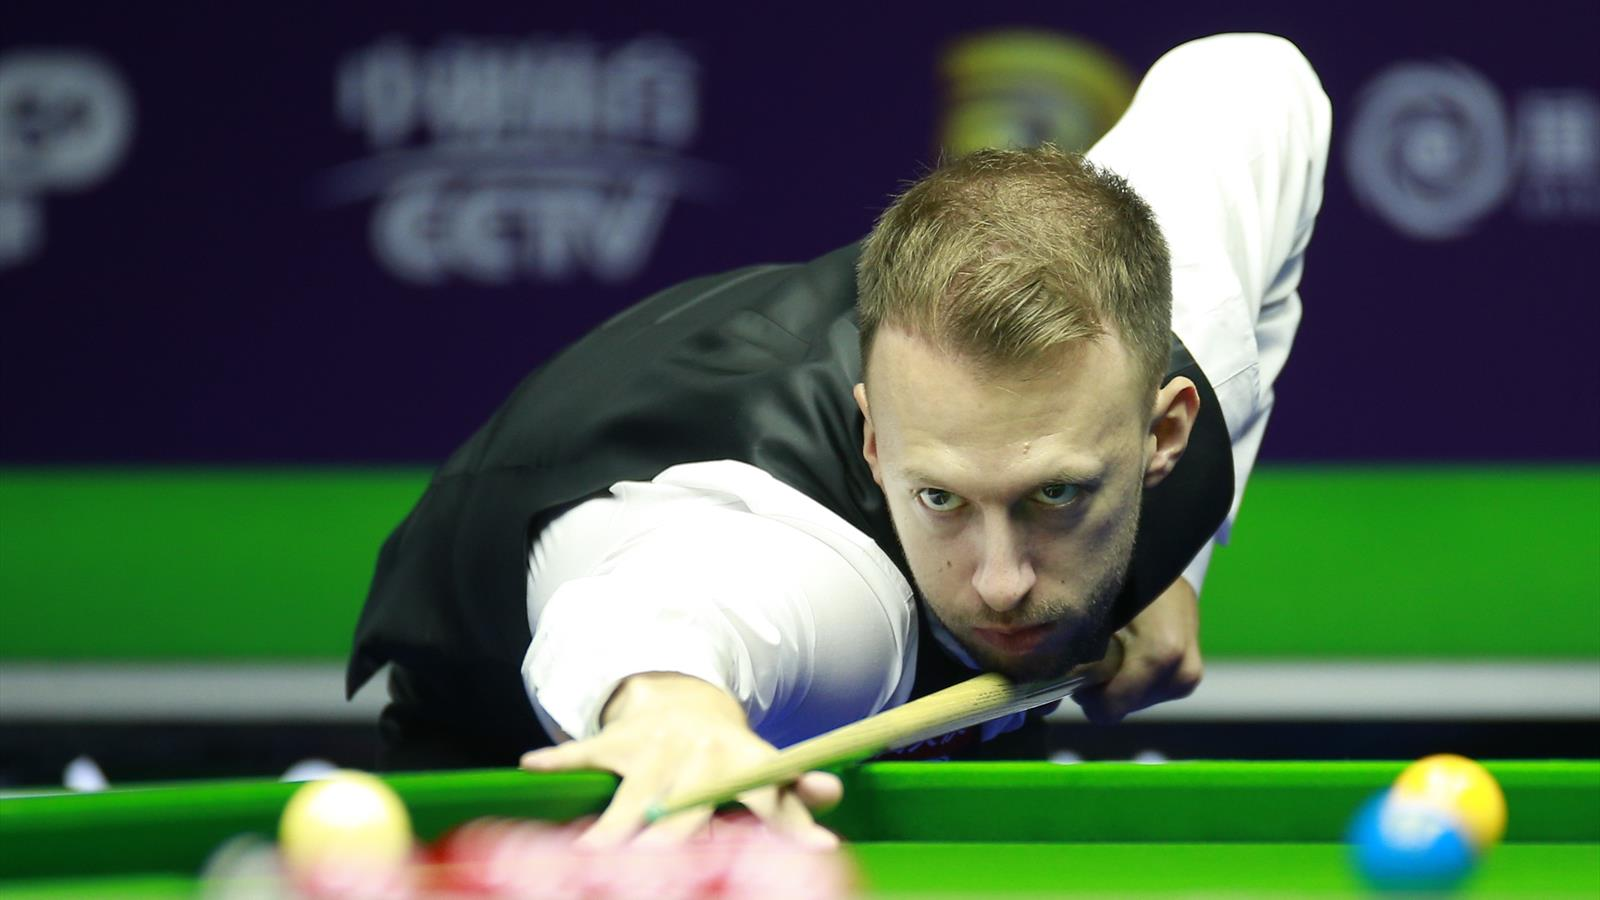 Snooker International Championship